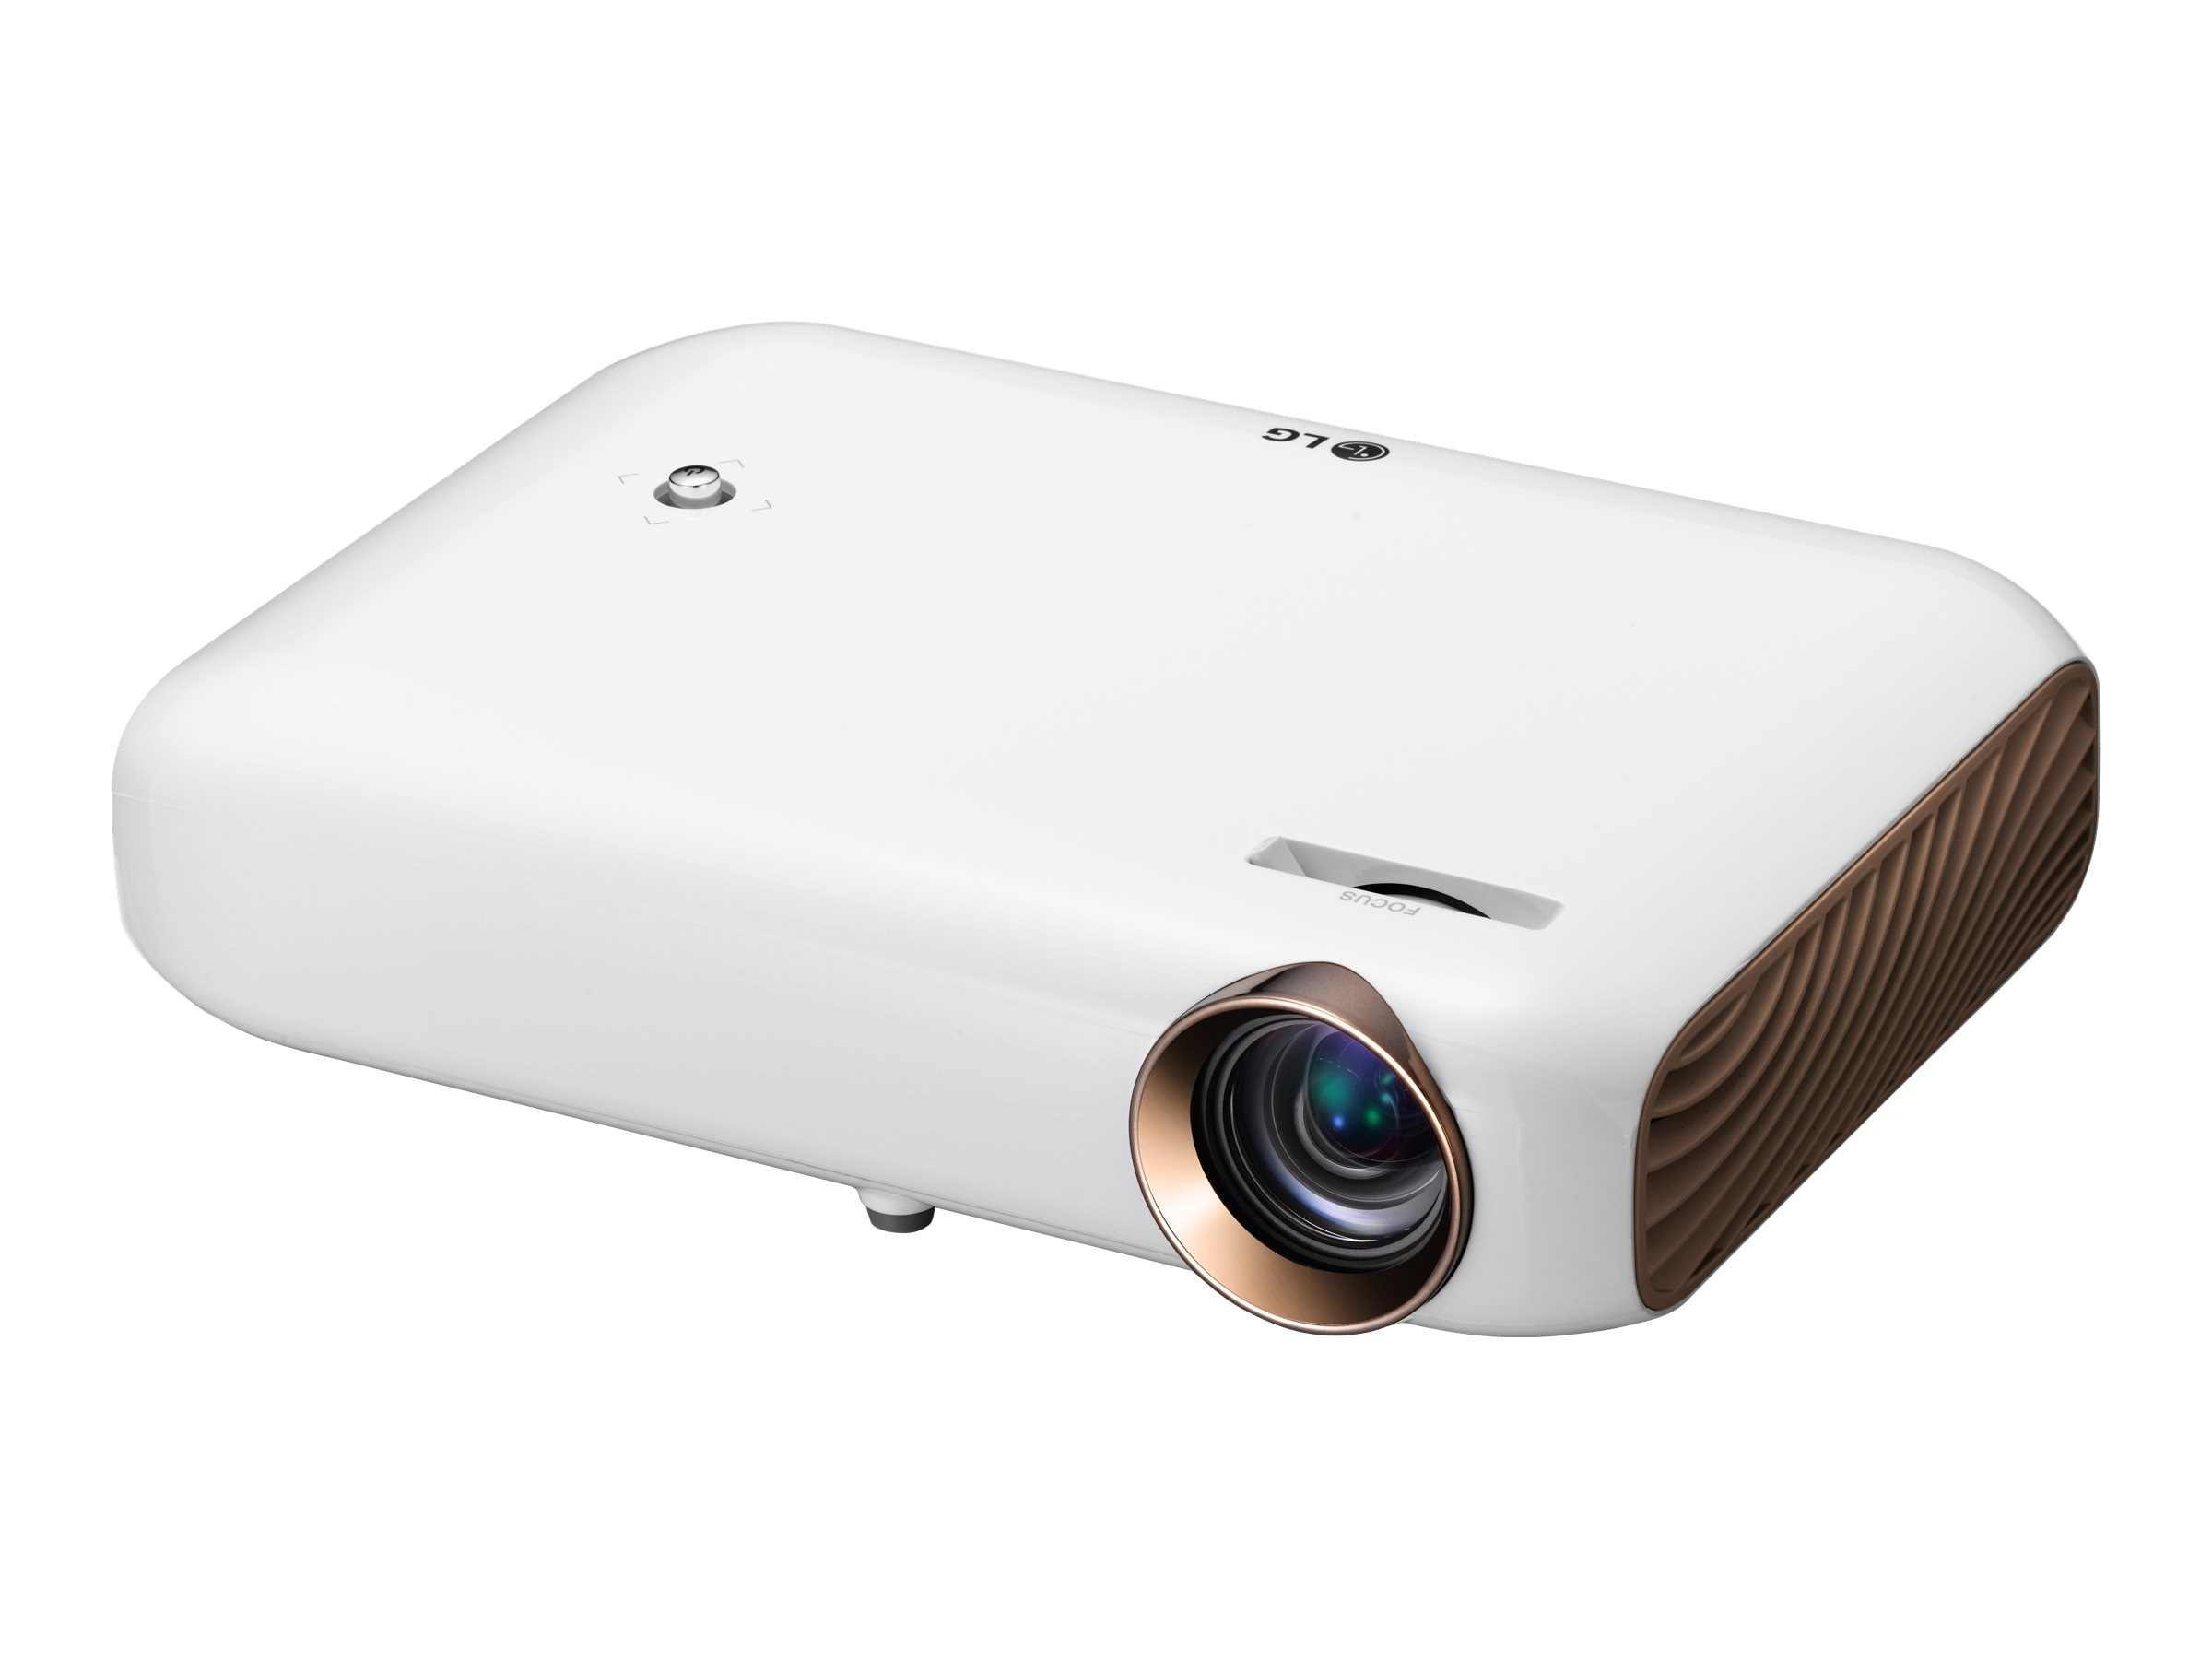 LG PW1500 WXGA LED Projector, 1500 Lumens, White